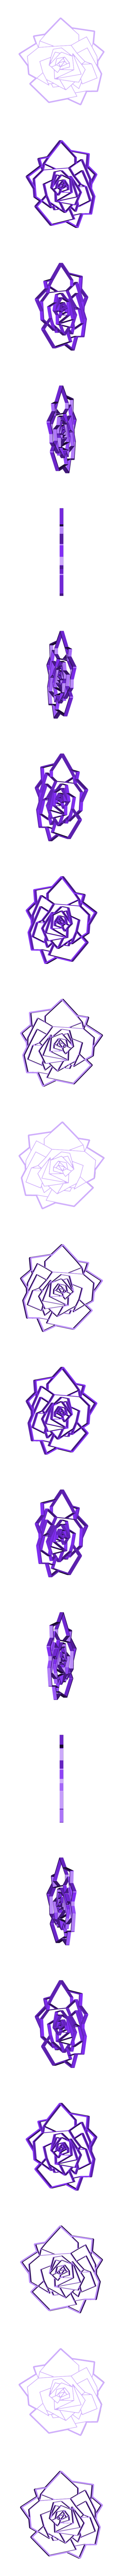 customized_origami_rose.stl Download free STL file Customizable Origami Rose • 3D printer template, MightyNozzle